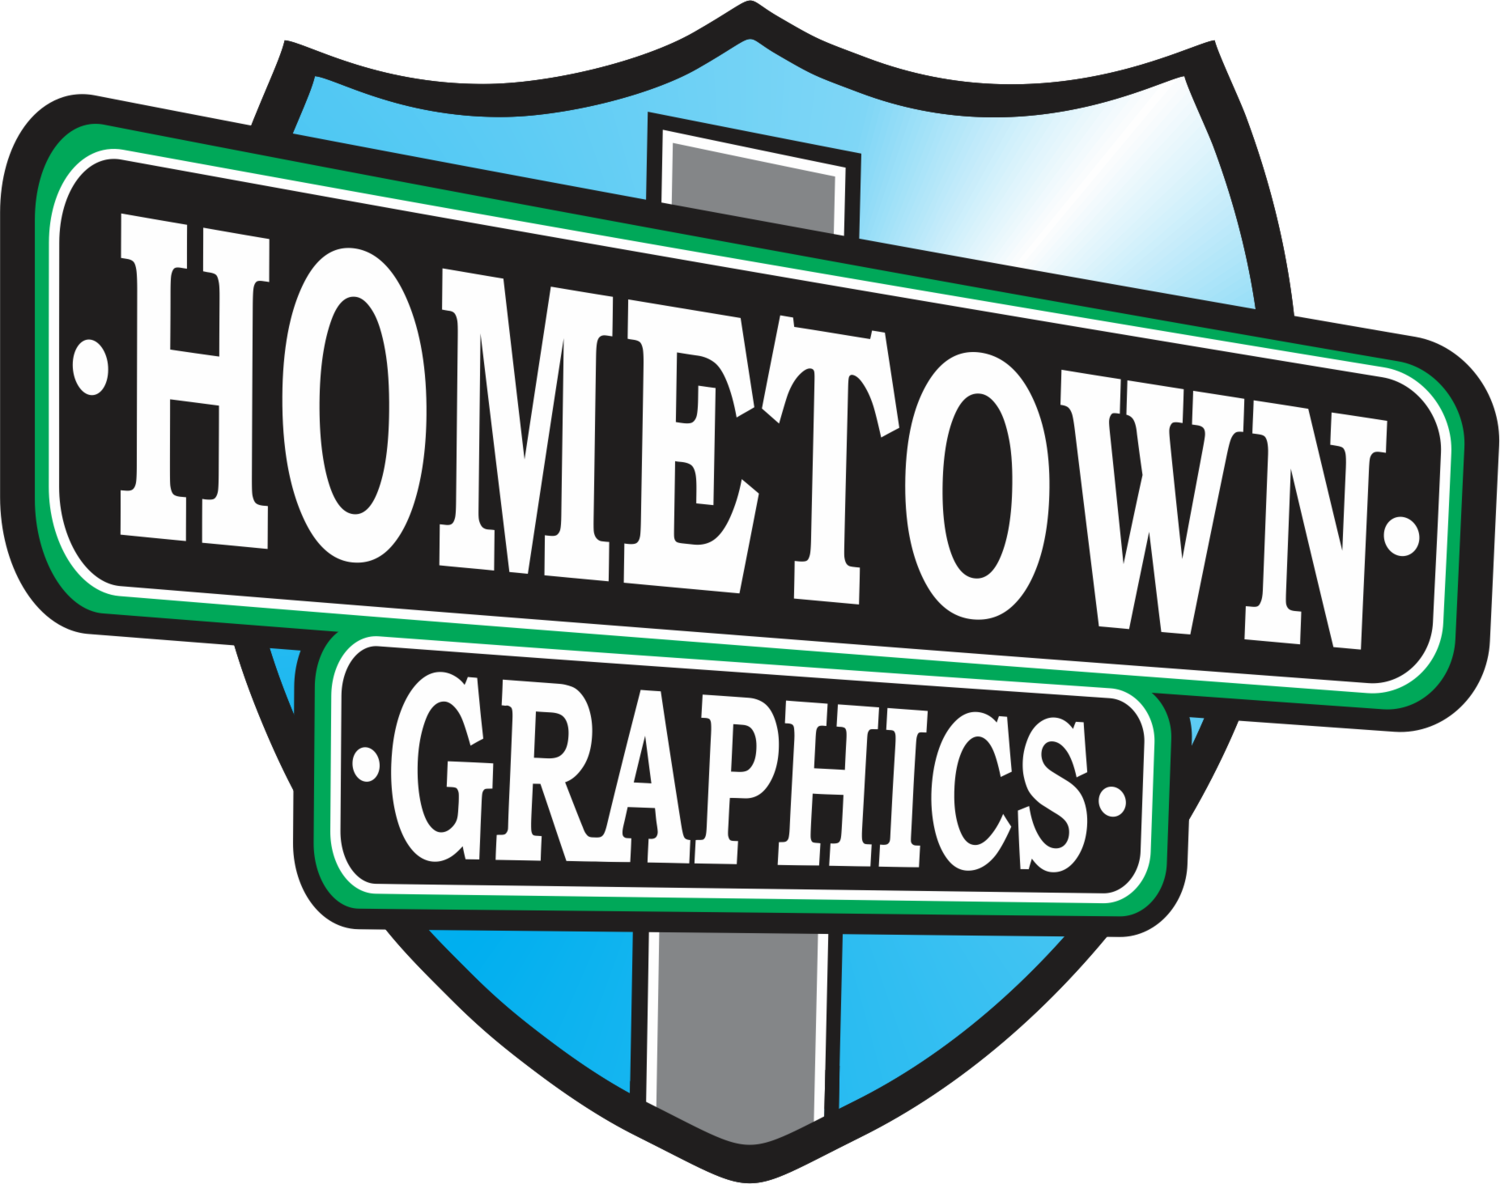 Hometown Graphics, LLC | Professional Graphics. From Our Family to Yours.